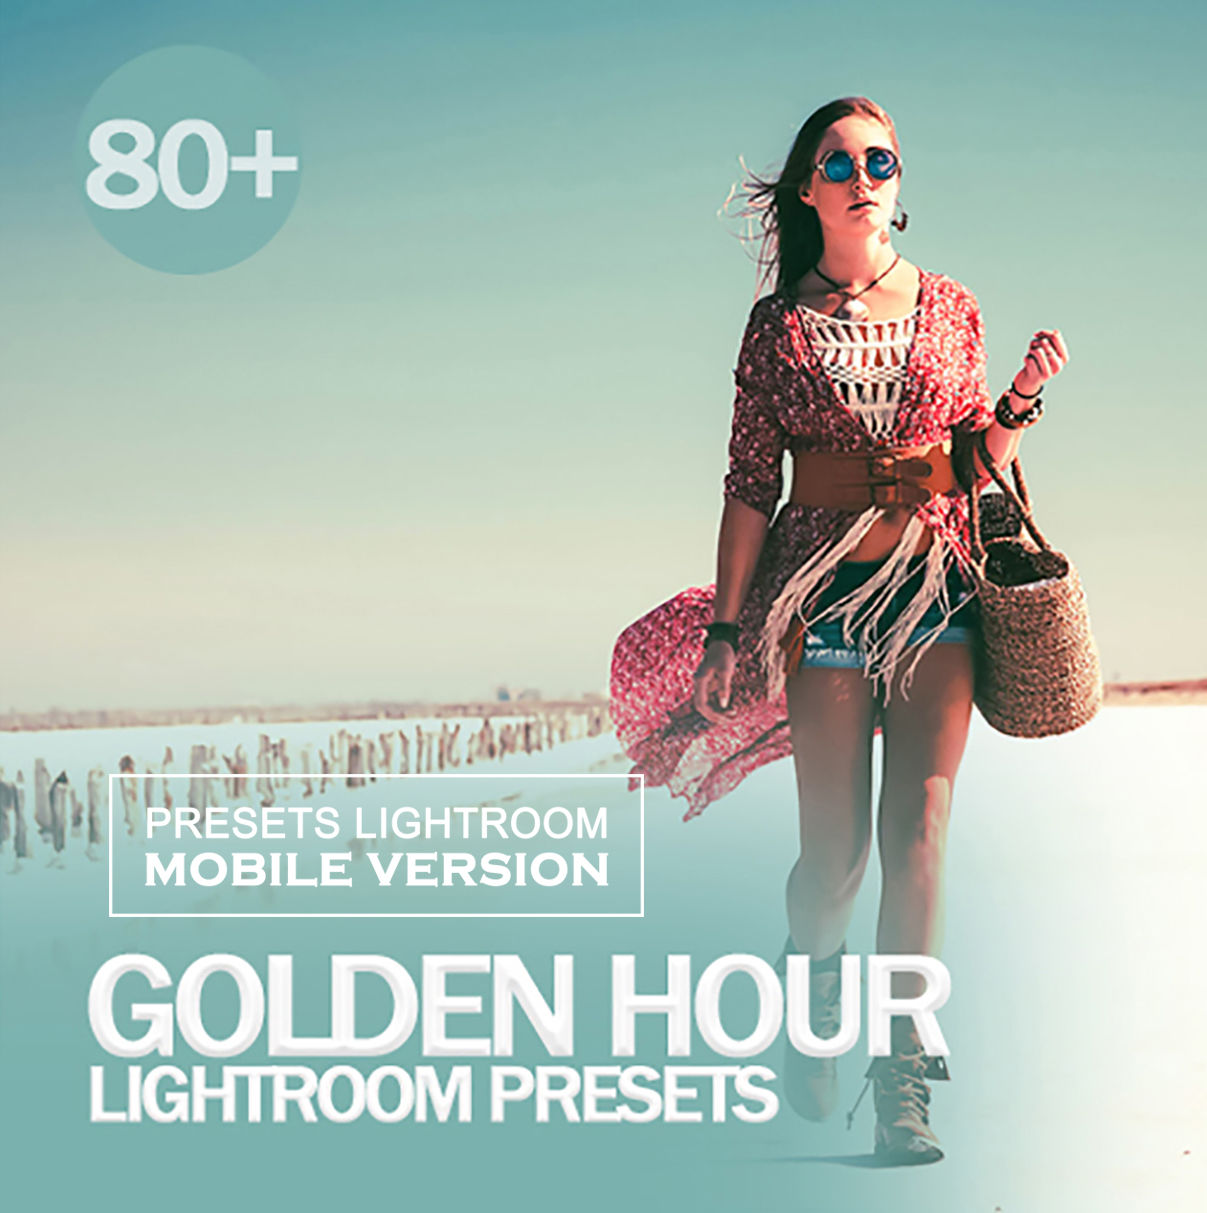 Golden Hour Lightroom CC Mobile Presets (Adroid and Iphone